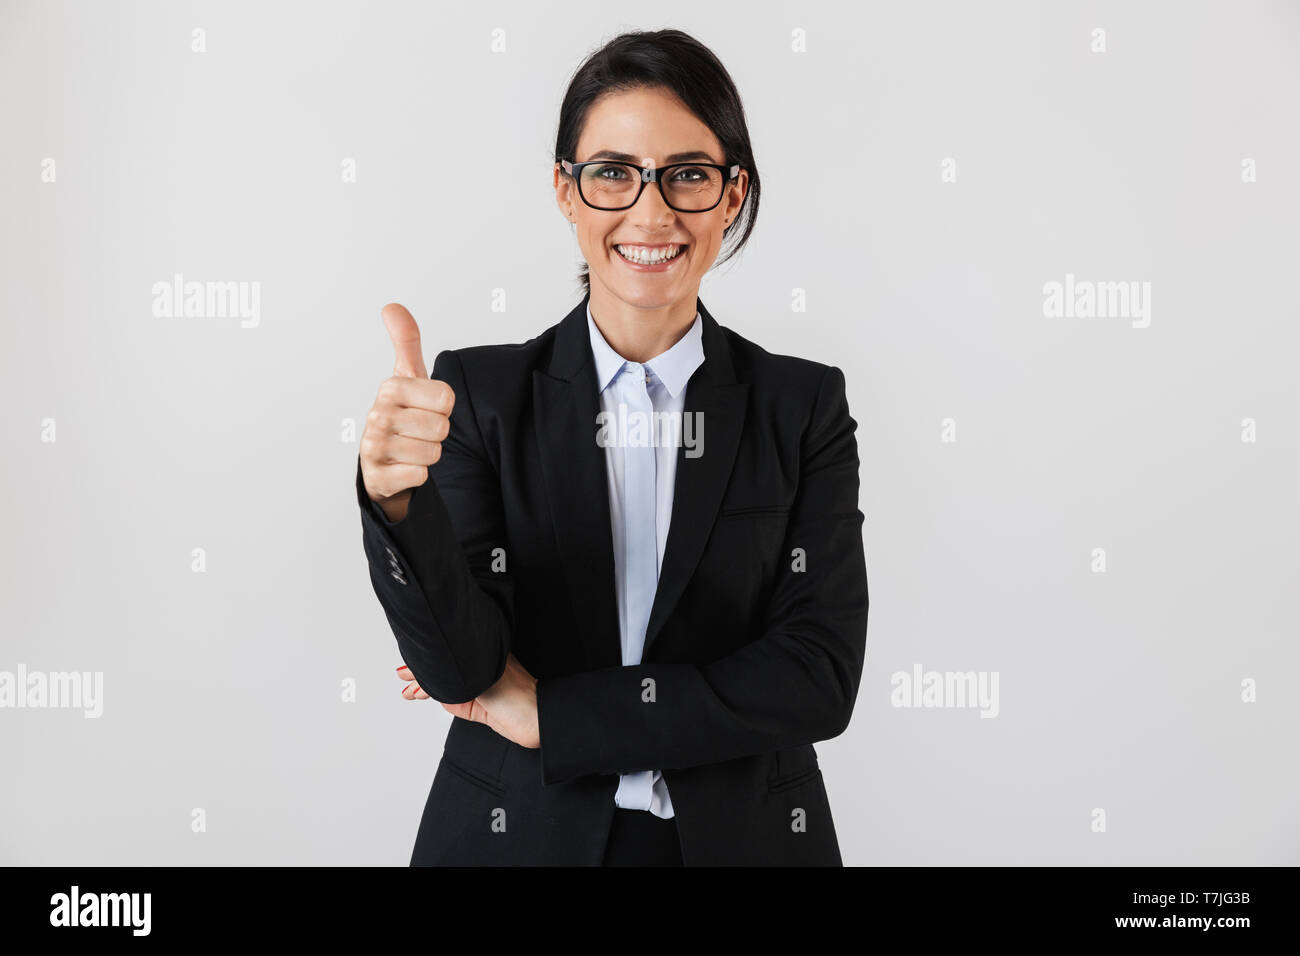 Portrait of caucasian businesswoman 30s in formal wear and eyeglasses standing in the office isolated over white background - Stock Image